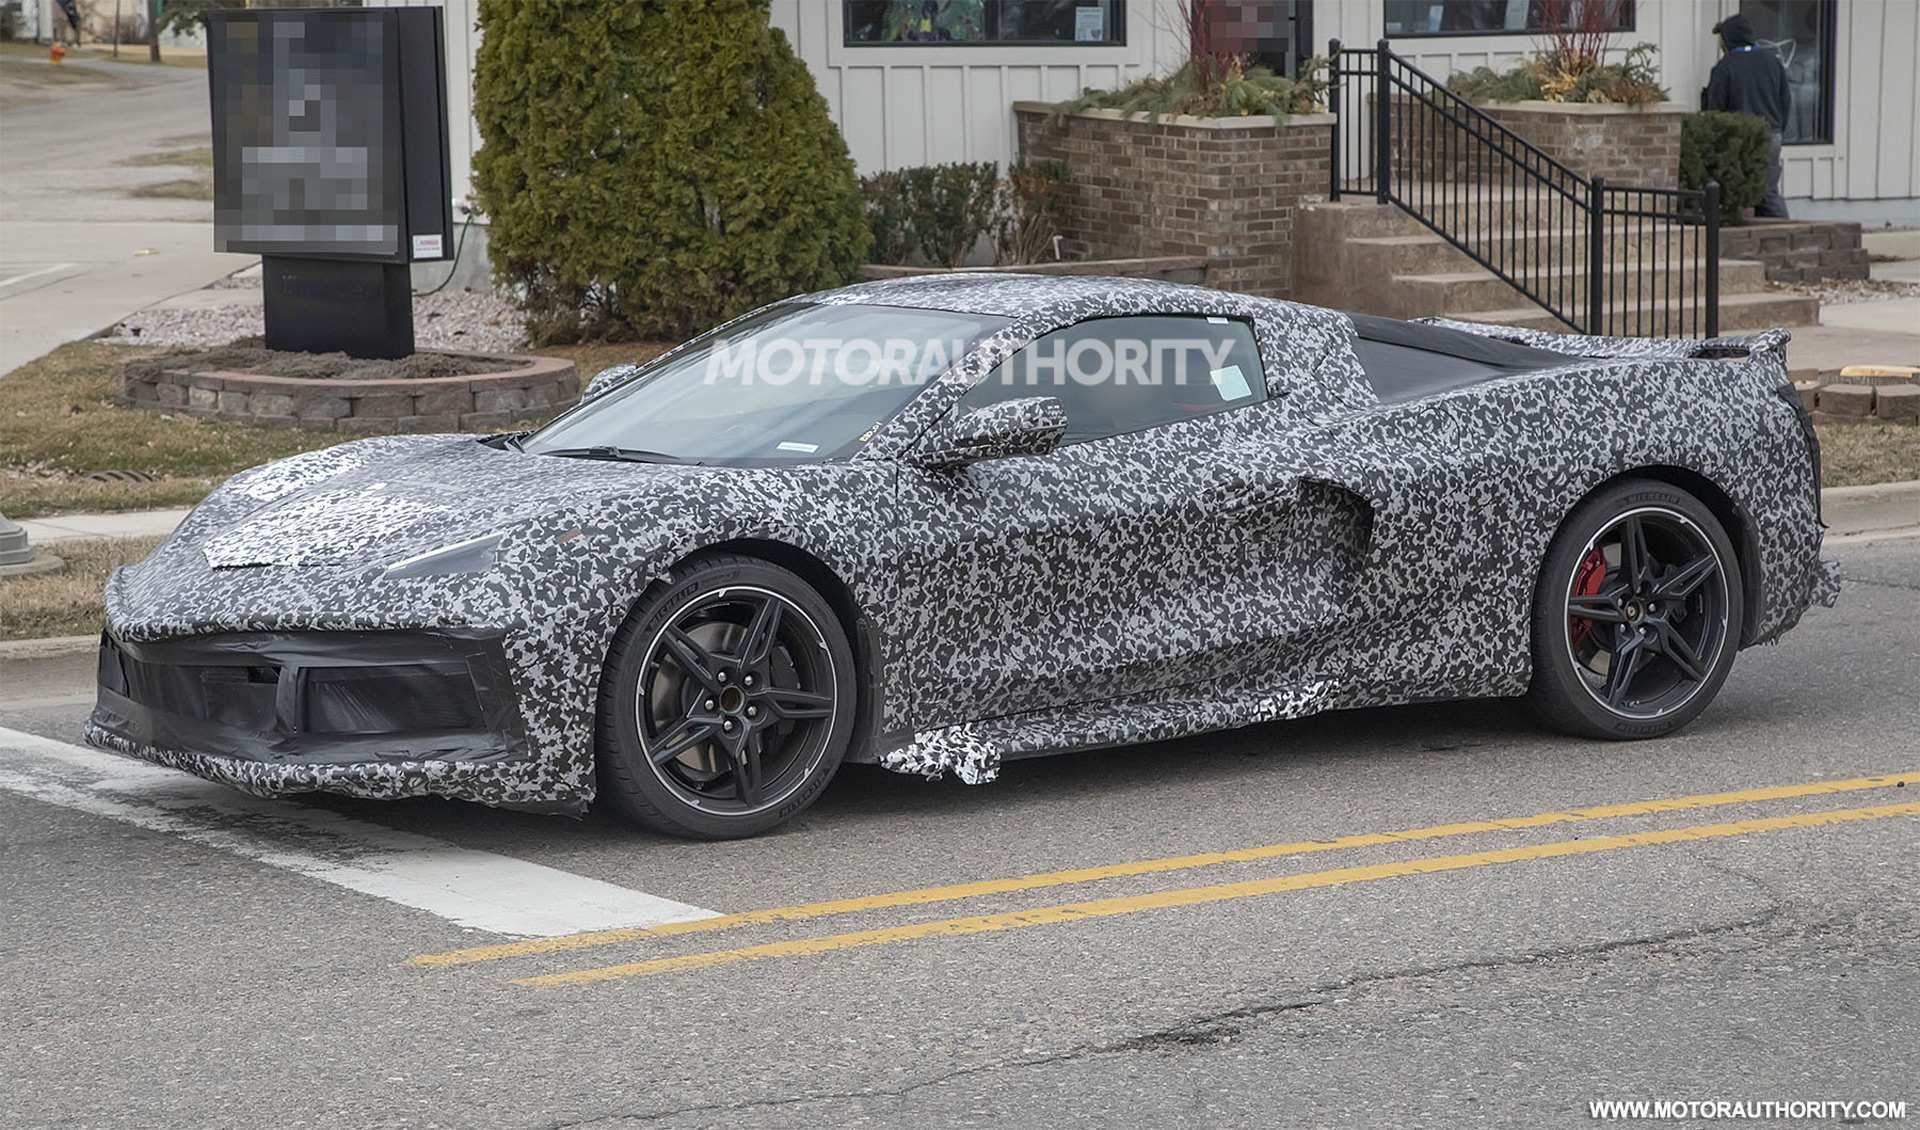 36 A New Chevrolet Corvette 2020 Release Date And Concept